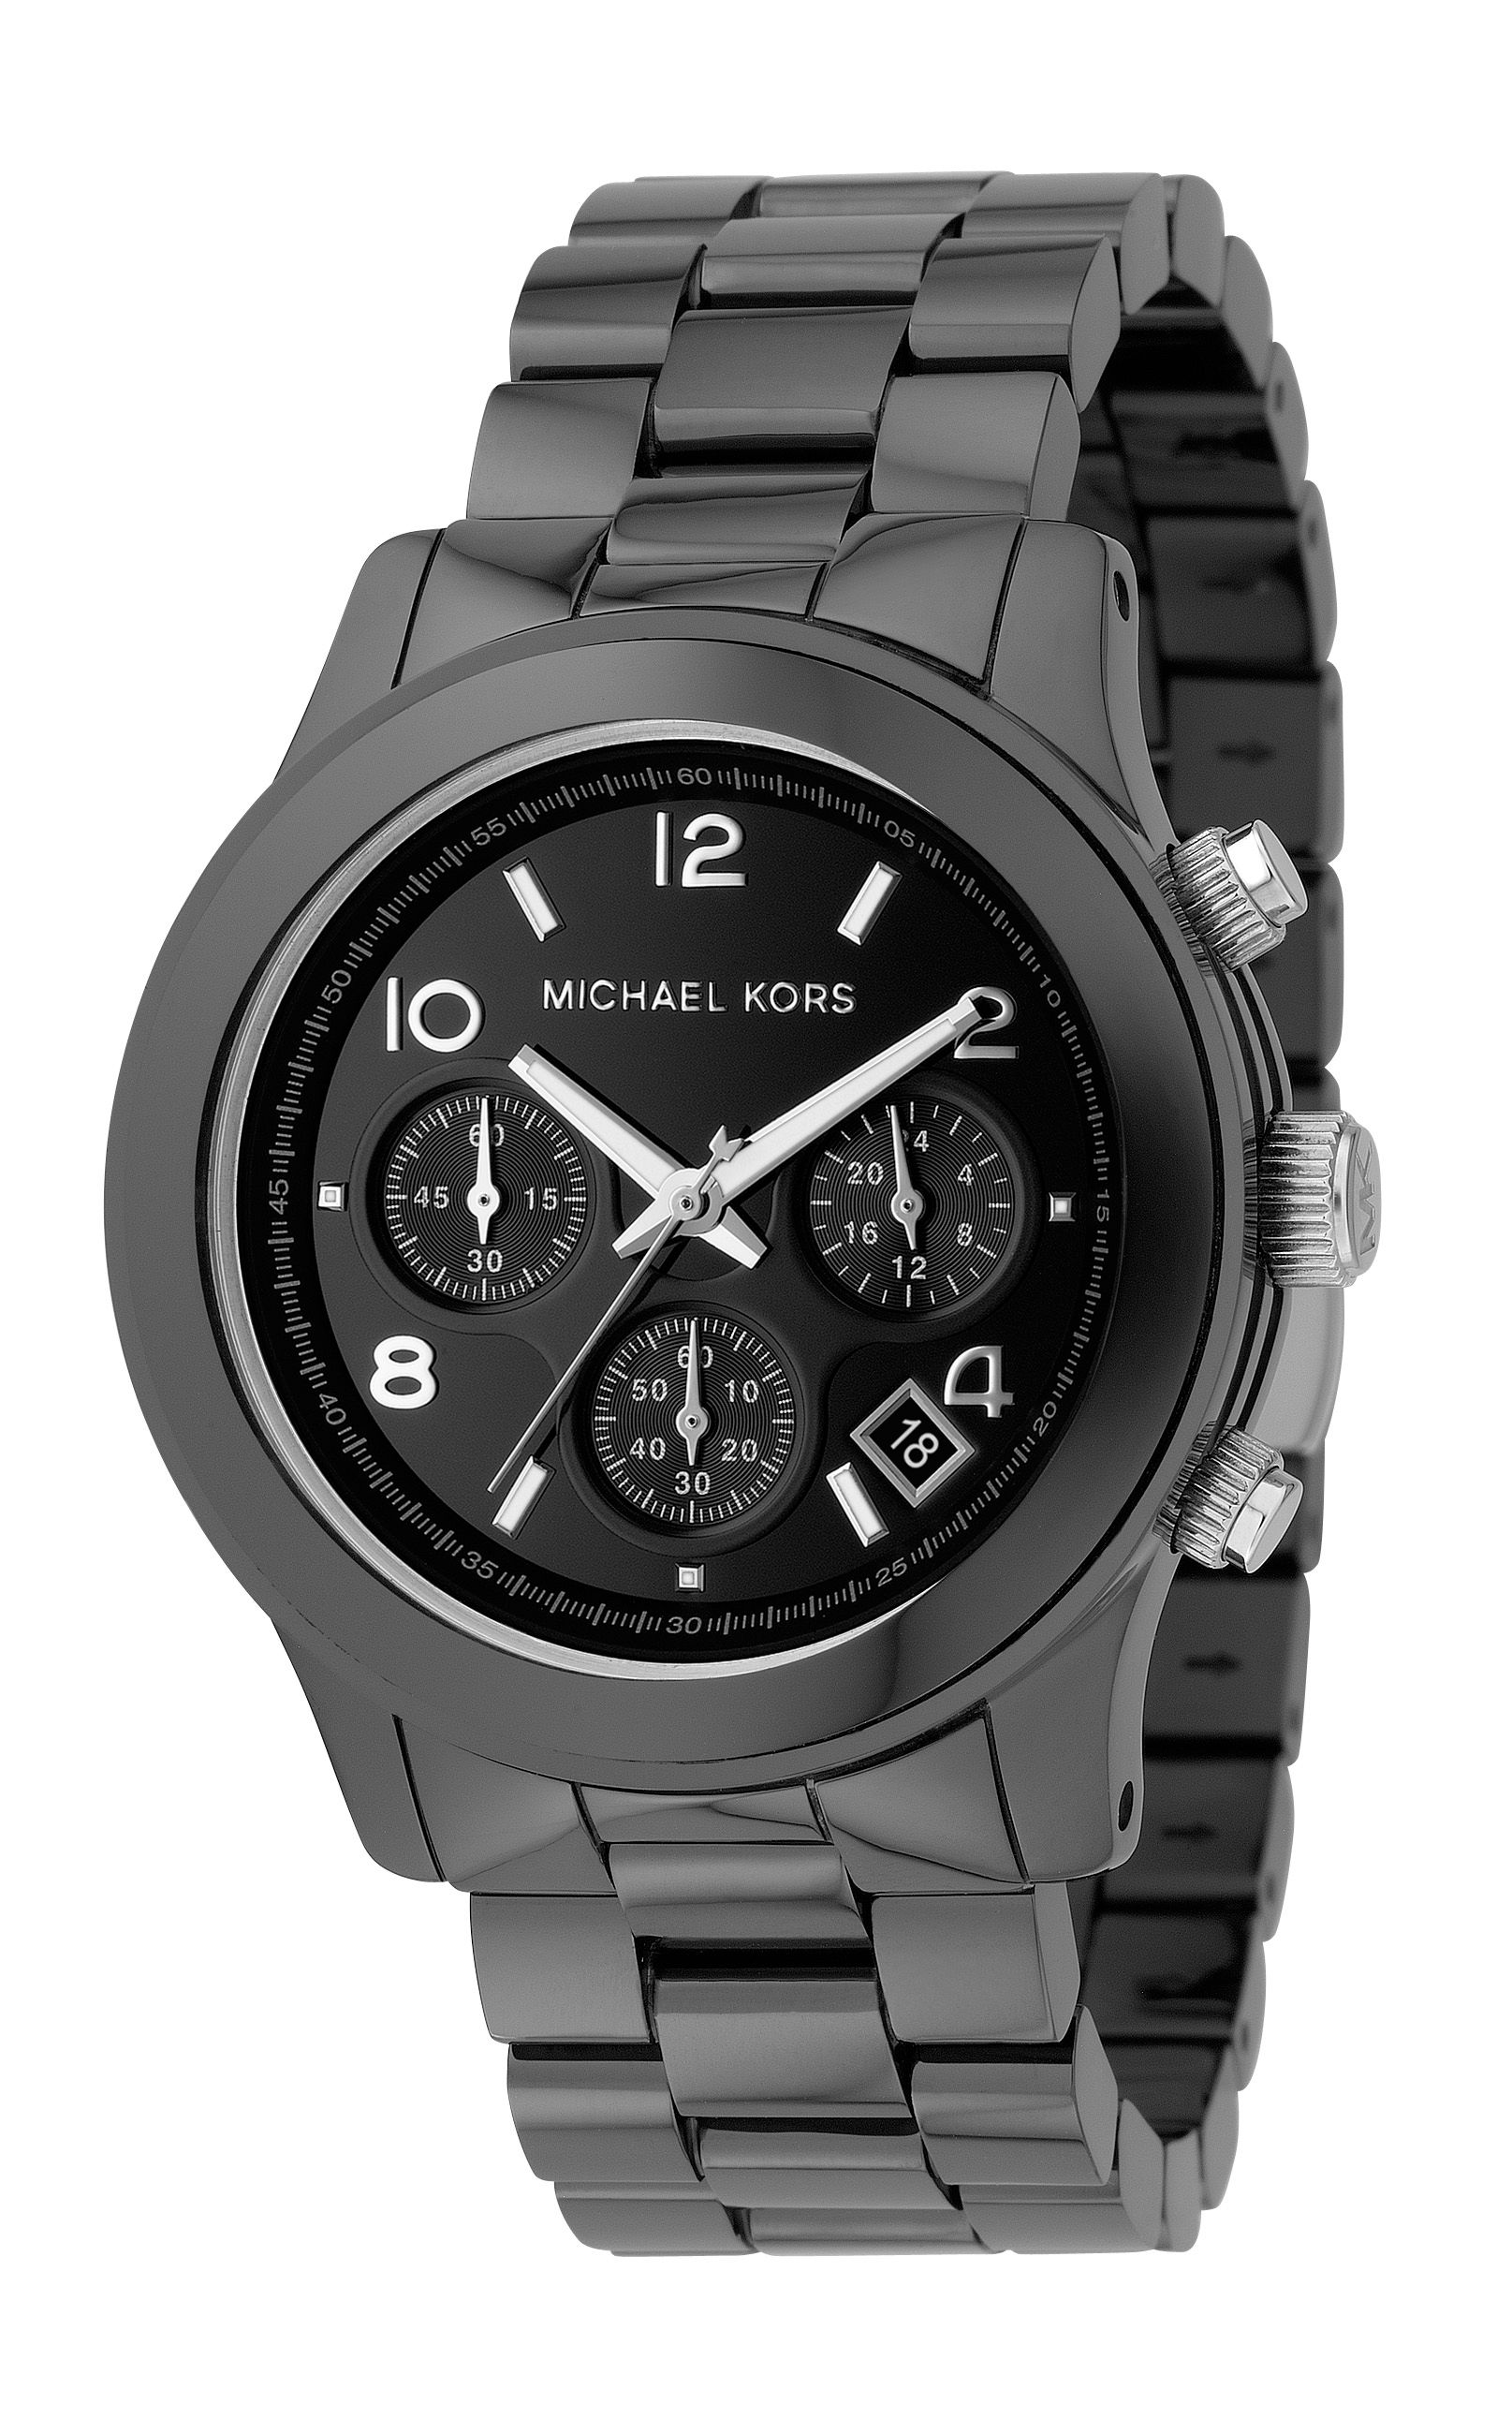 Michael Kors Round Case, Mixed Chrono Dial, Black ceramic product image